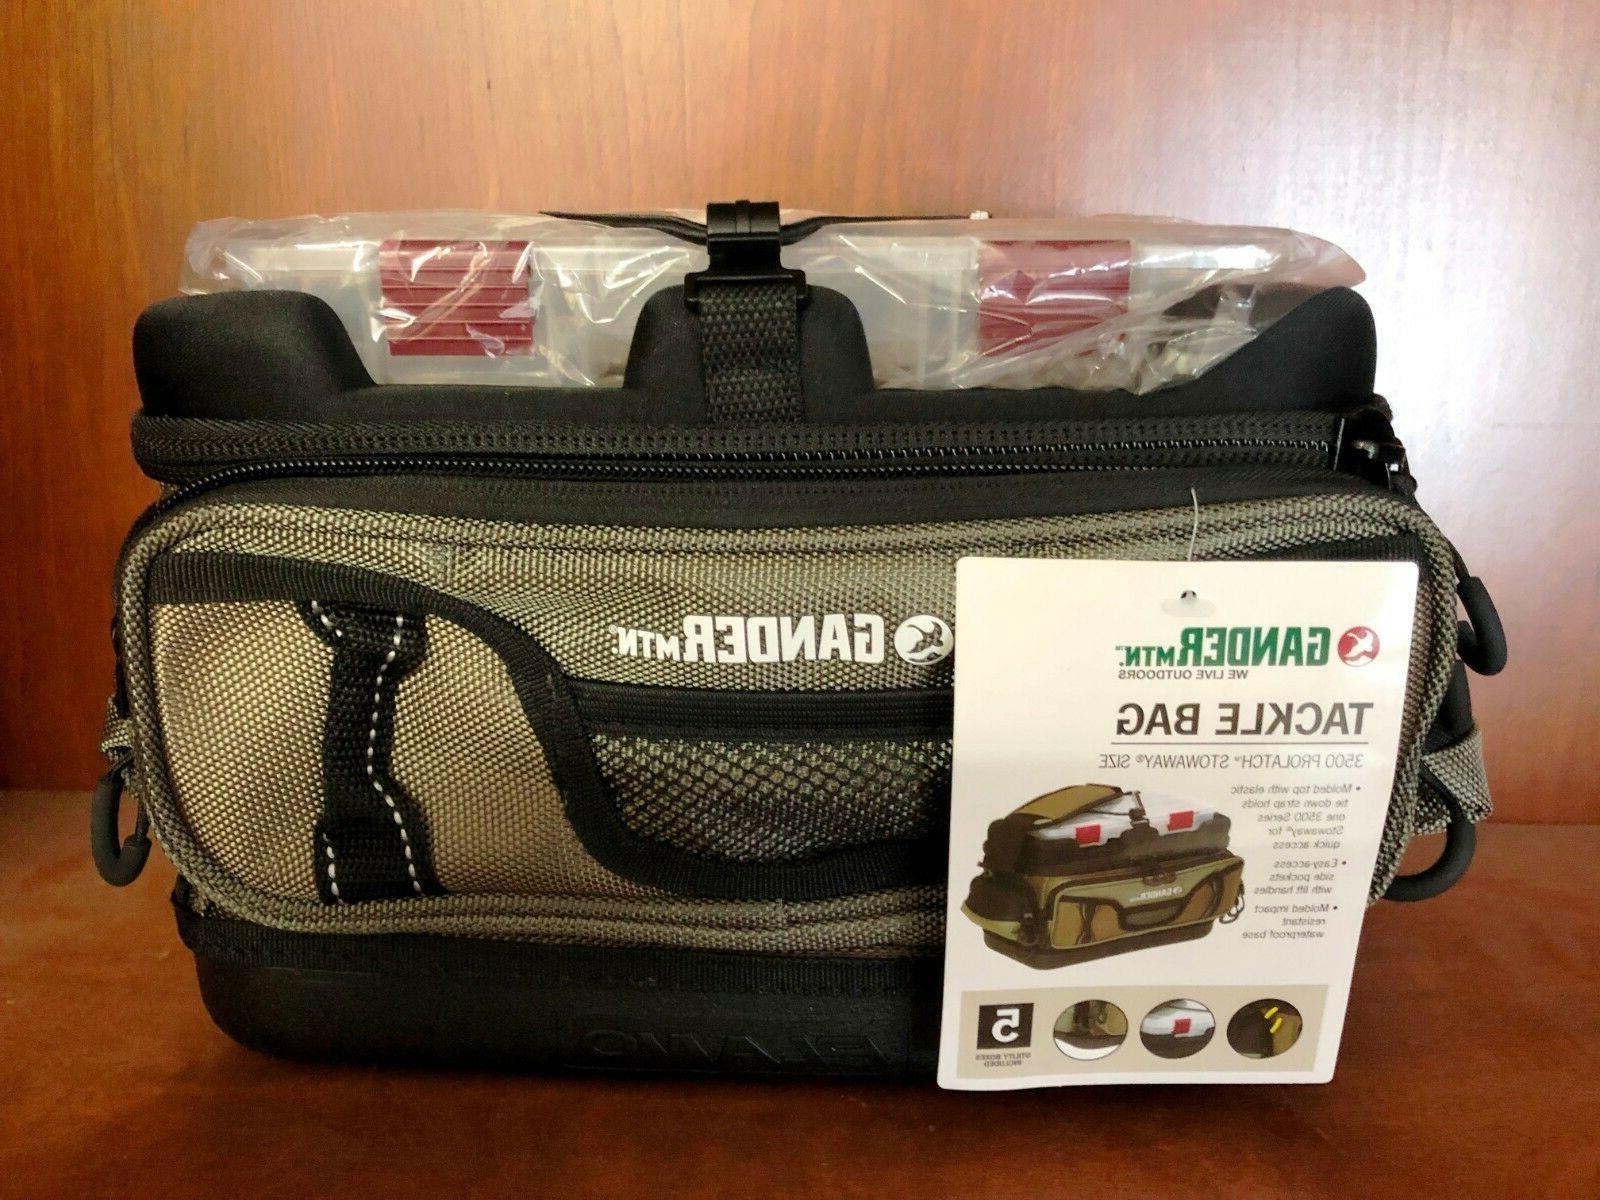 8921 PLANO Gander Mountain Guide Series Tackle Bag 3500 Prolatch Stowaway Size